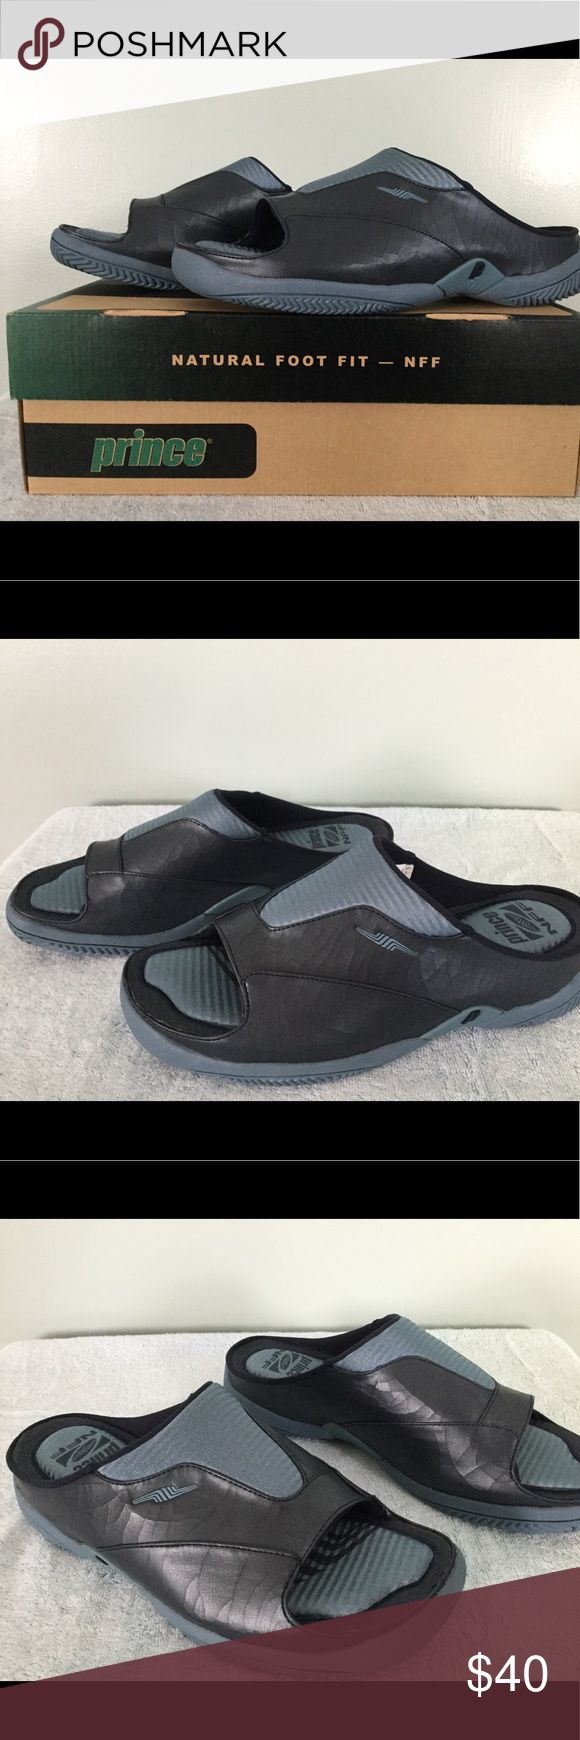 PRINCE, Women's, Navy NFFIT SLIDE MULES, Sz 9 PRINCE, Women's NFFIT SLIDE Sneakers / Mules Step-In Style, Size 9. Sneakers are Navy/Light Blue. Leather has minimal drying to texture as seen in photos. BRAND NEW in Box! Prince Shoes Athletic Shoes